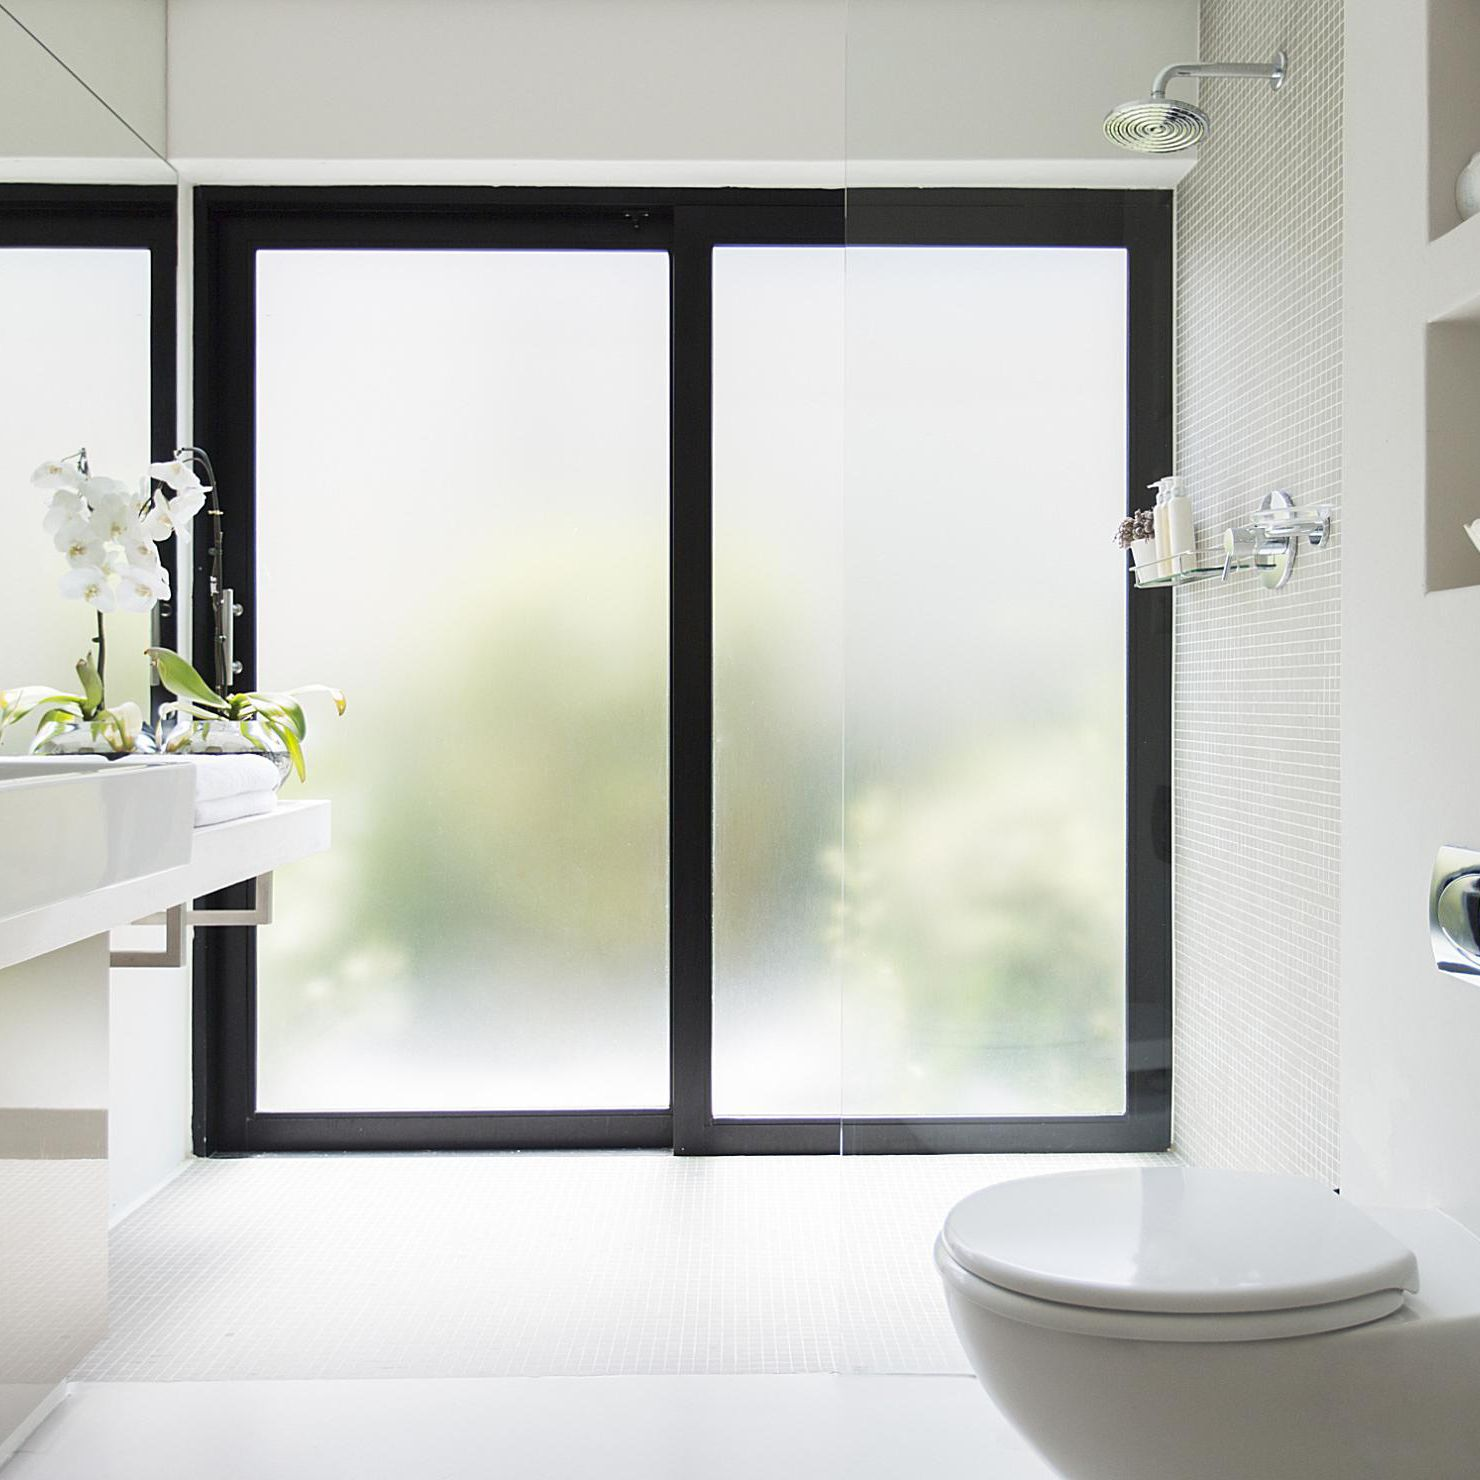 7 Improvements to Consider for Your Next Bathroom Remodel